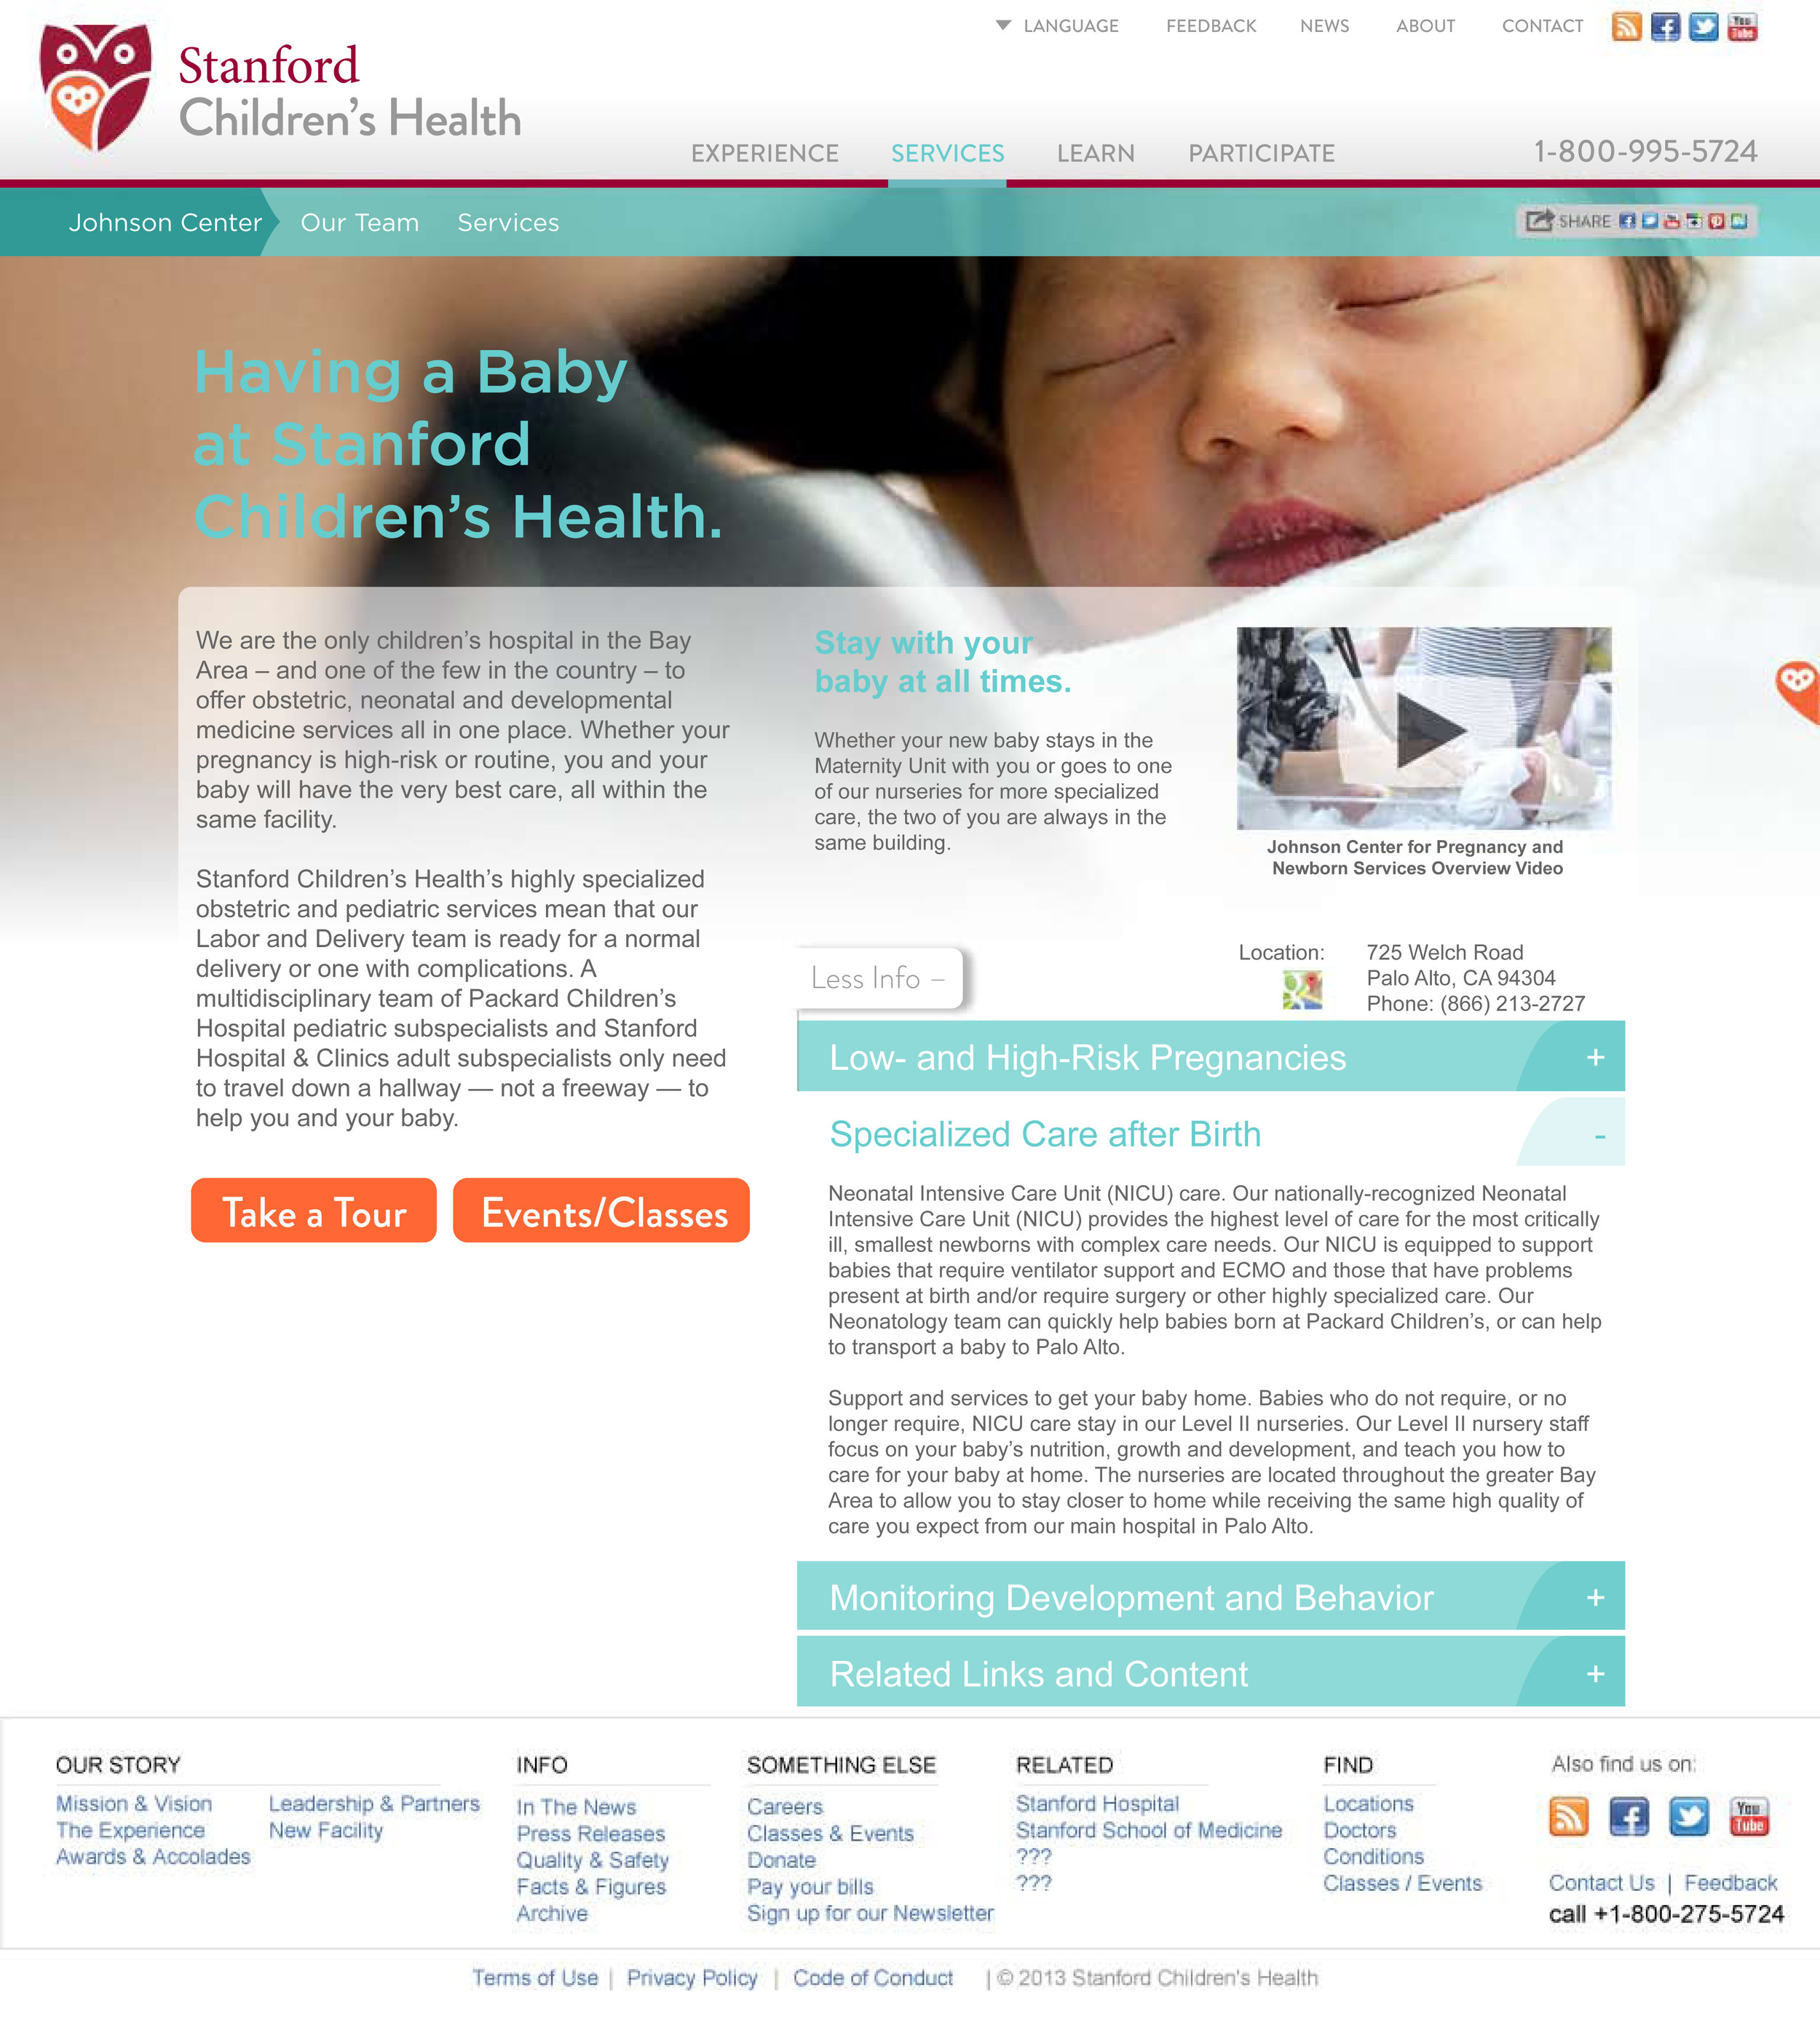 Stanford Children's Health Website Expanded Content